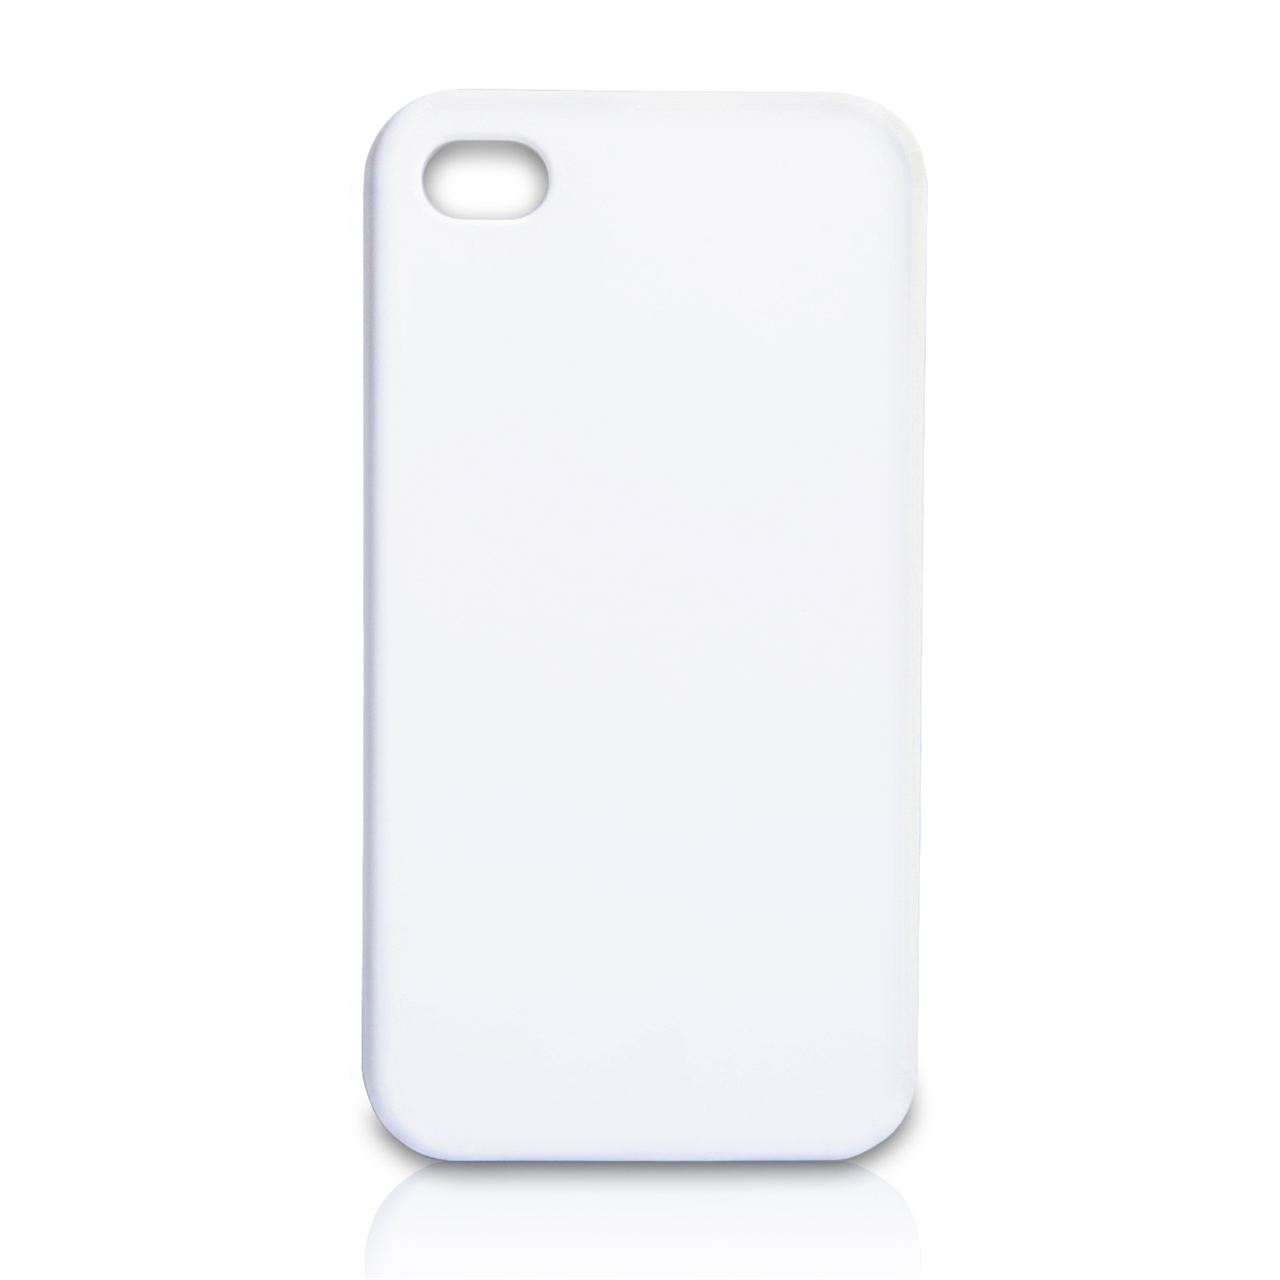 YouSave Accessories iPhone 4 / 4S Hard Hybrid Case - White